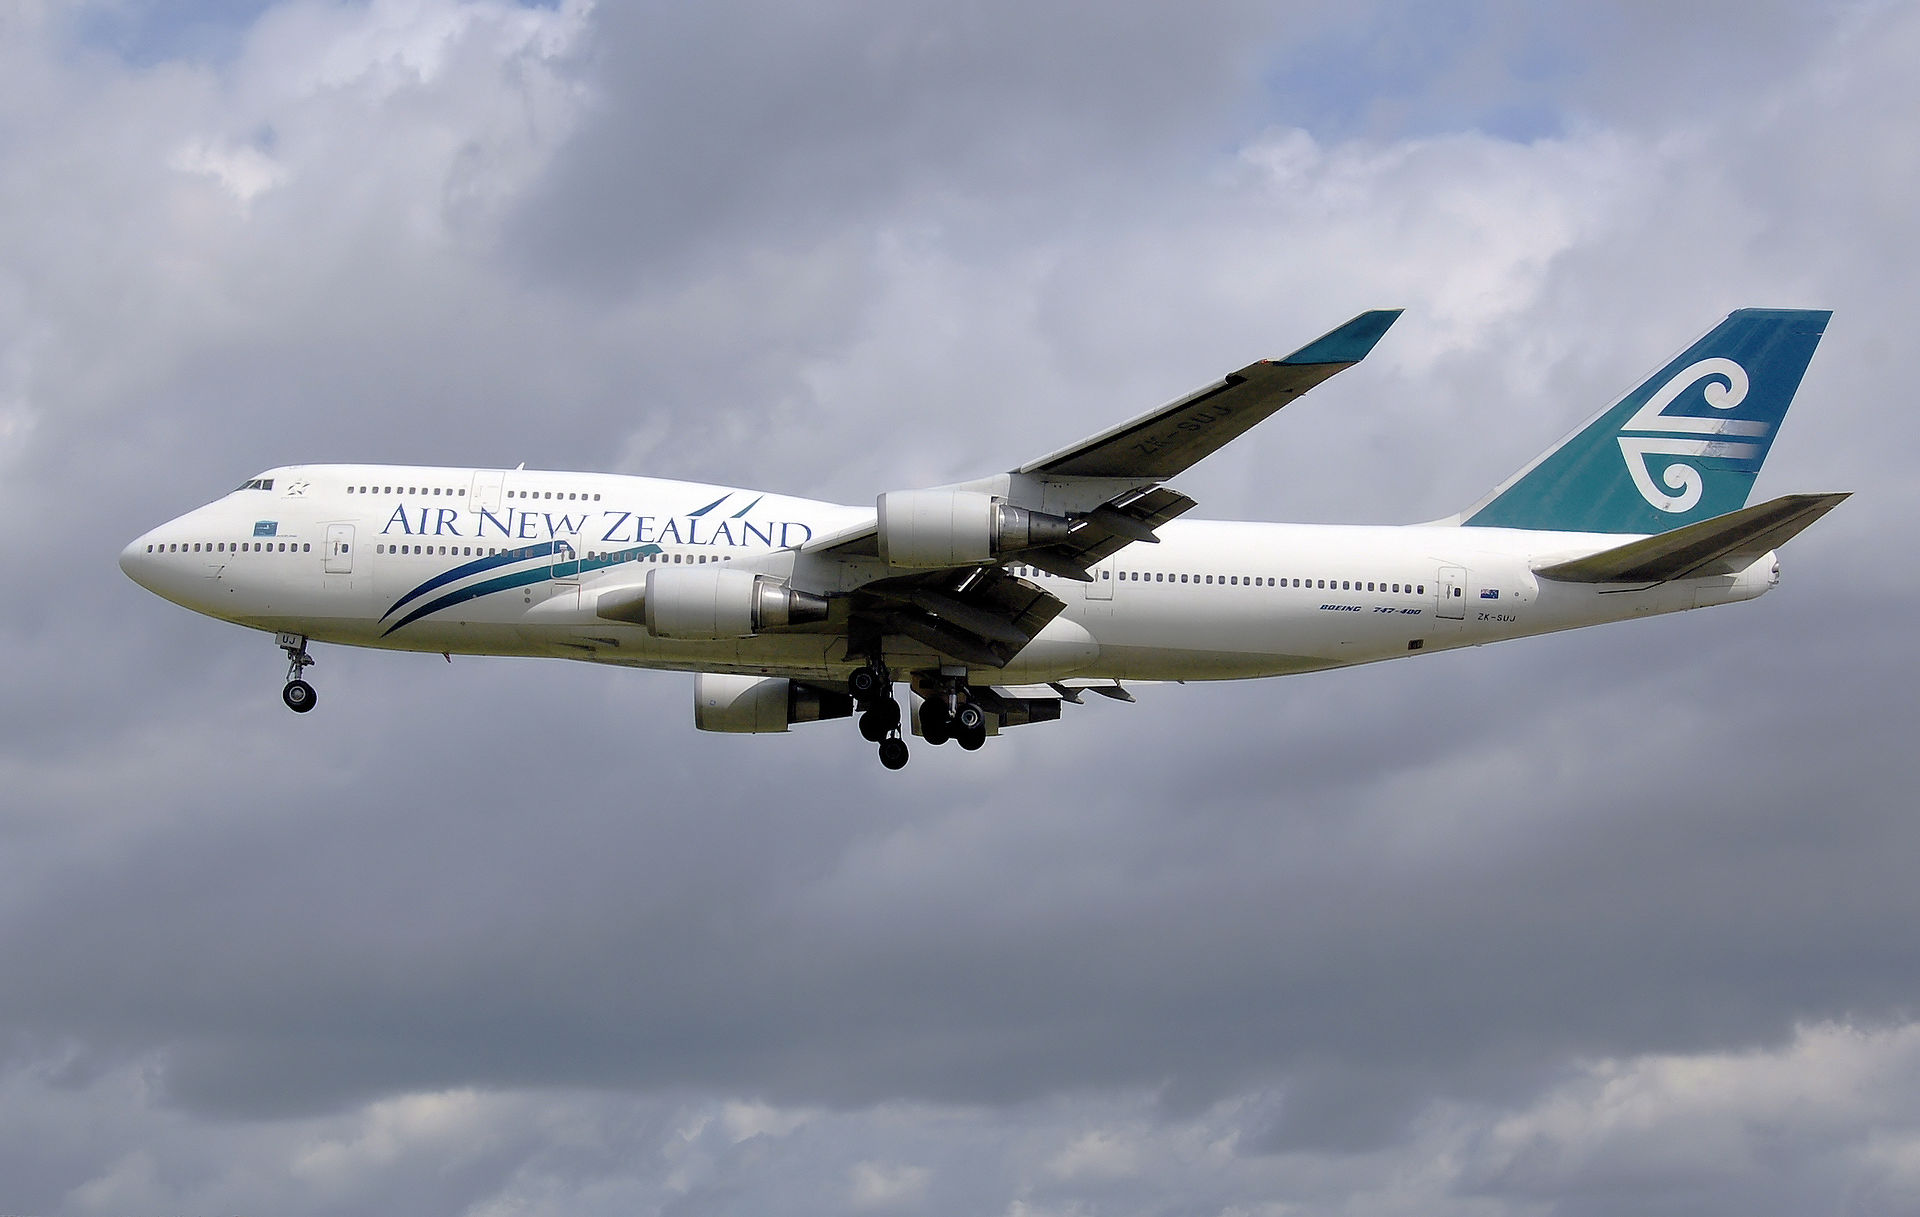 1920px-Air_New_Zealand_747-400_sideview.